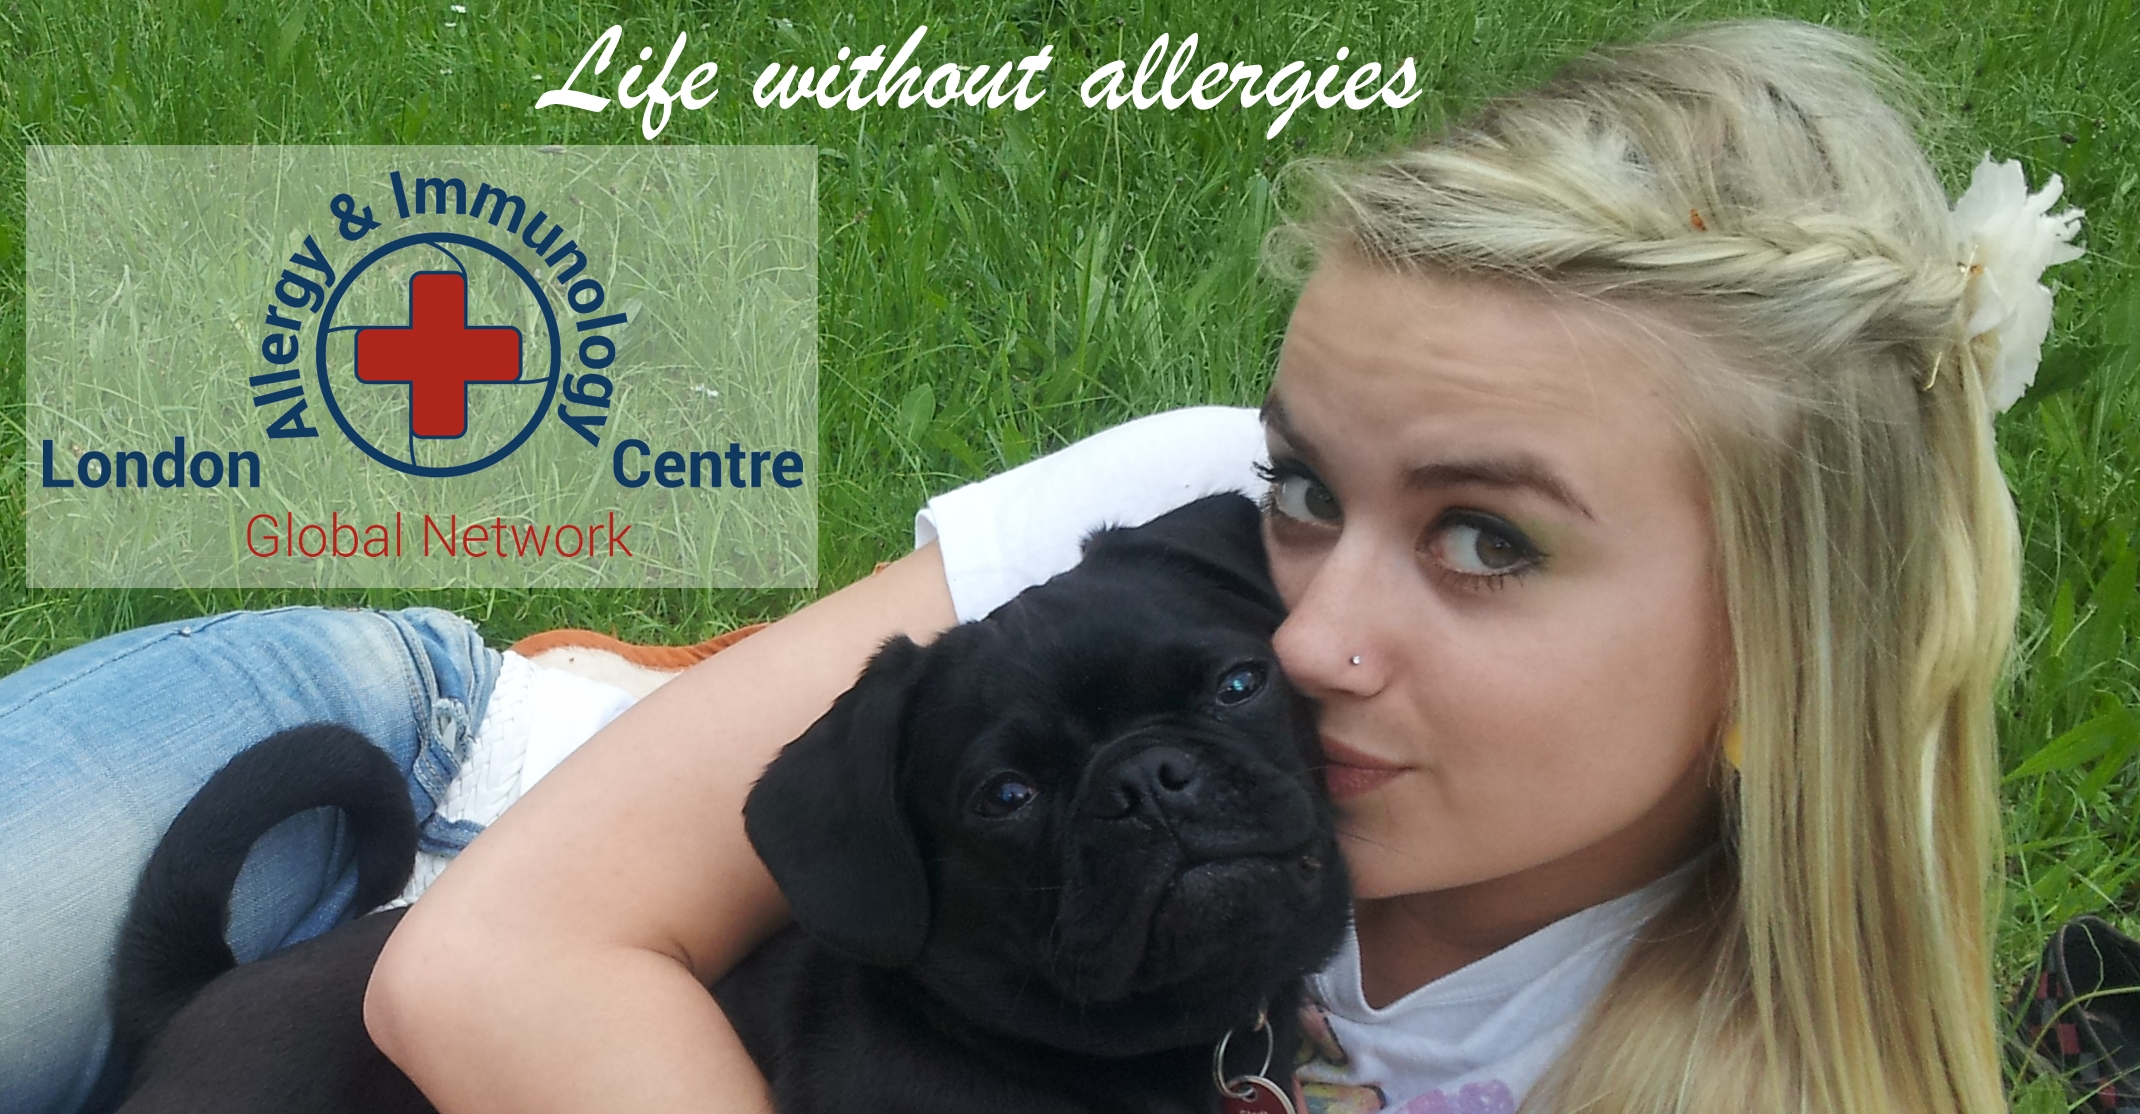 New_life_without_allergies_UKallergy